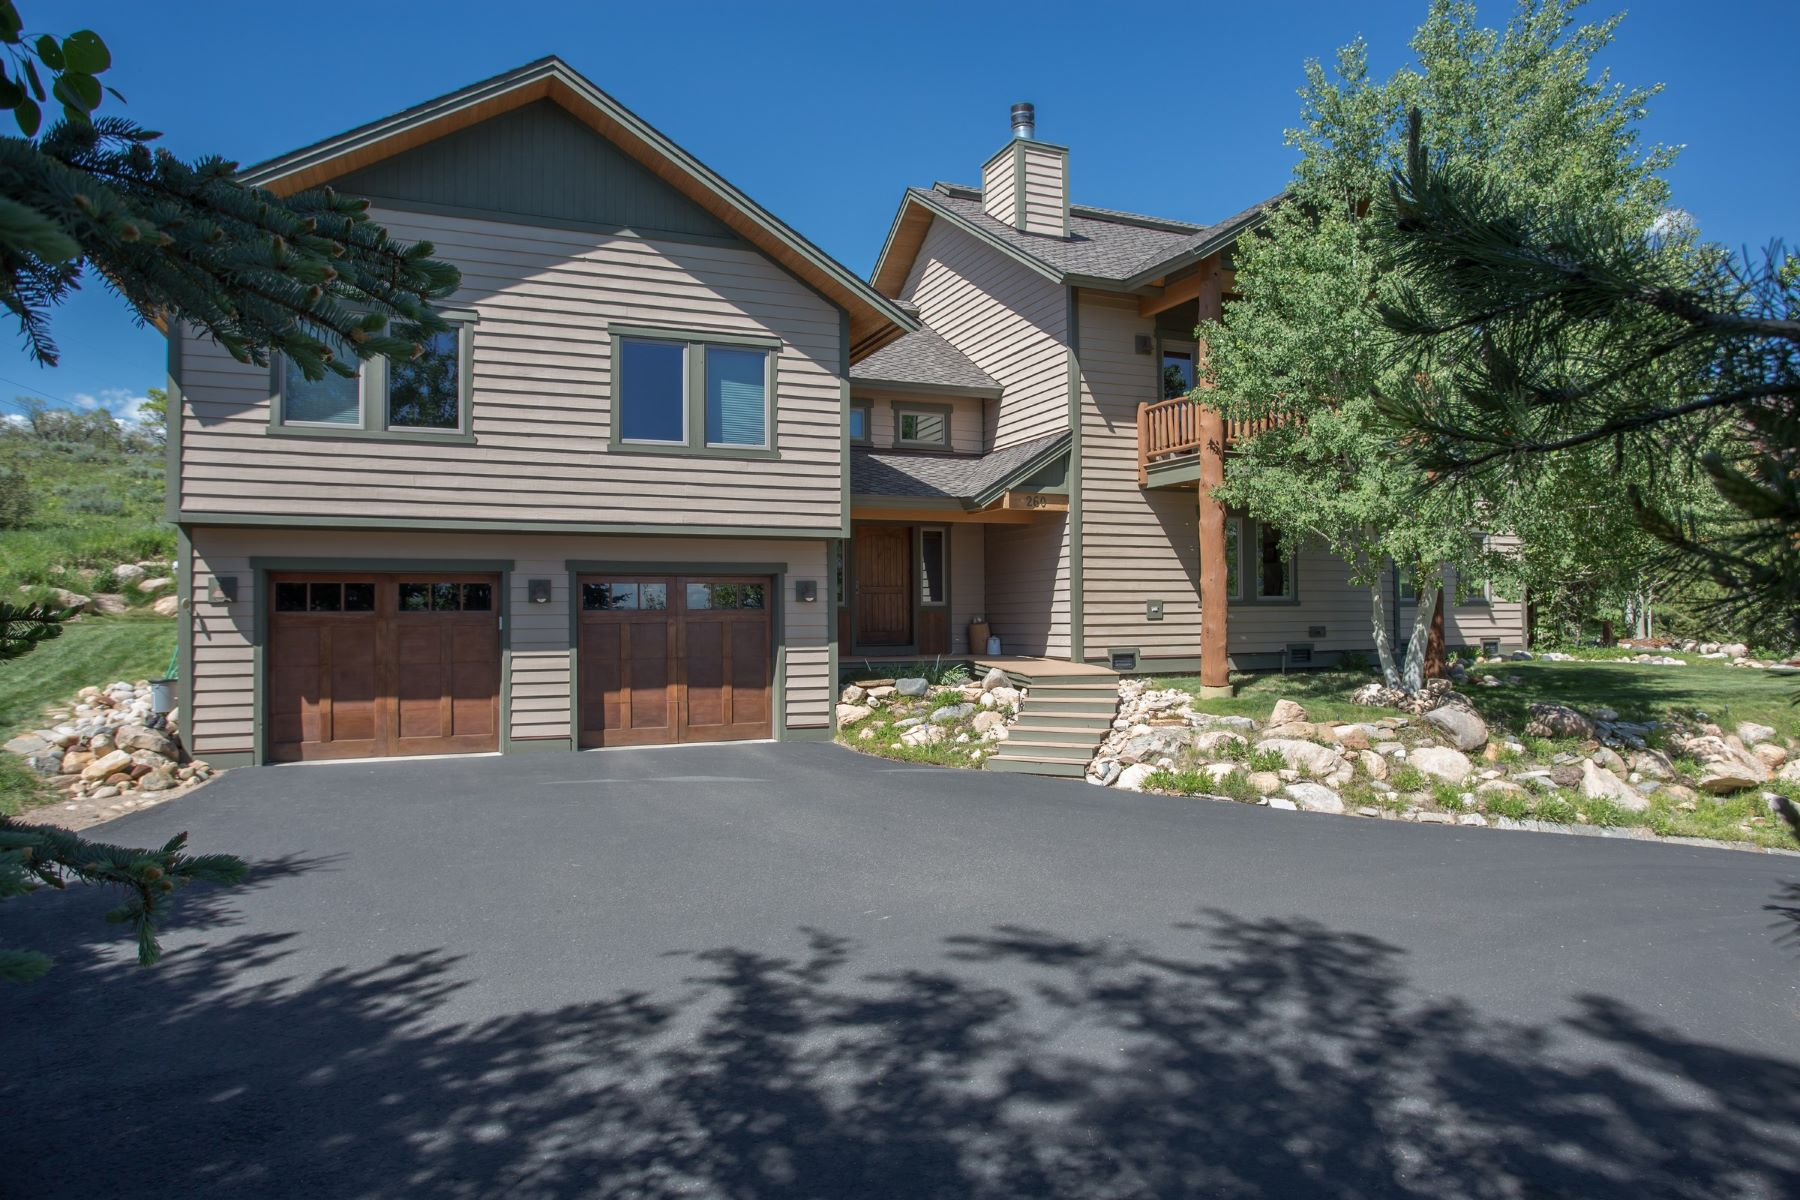 Single Family Home for Rent at 260 I Storm Peak Court 260 Storm Peak Ct Steamboat Springs, Colorado 80487 United States